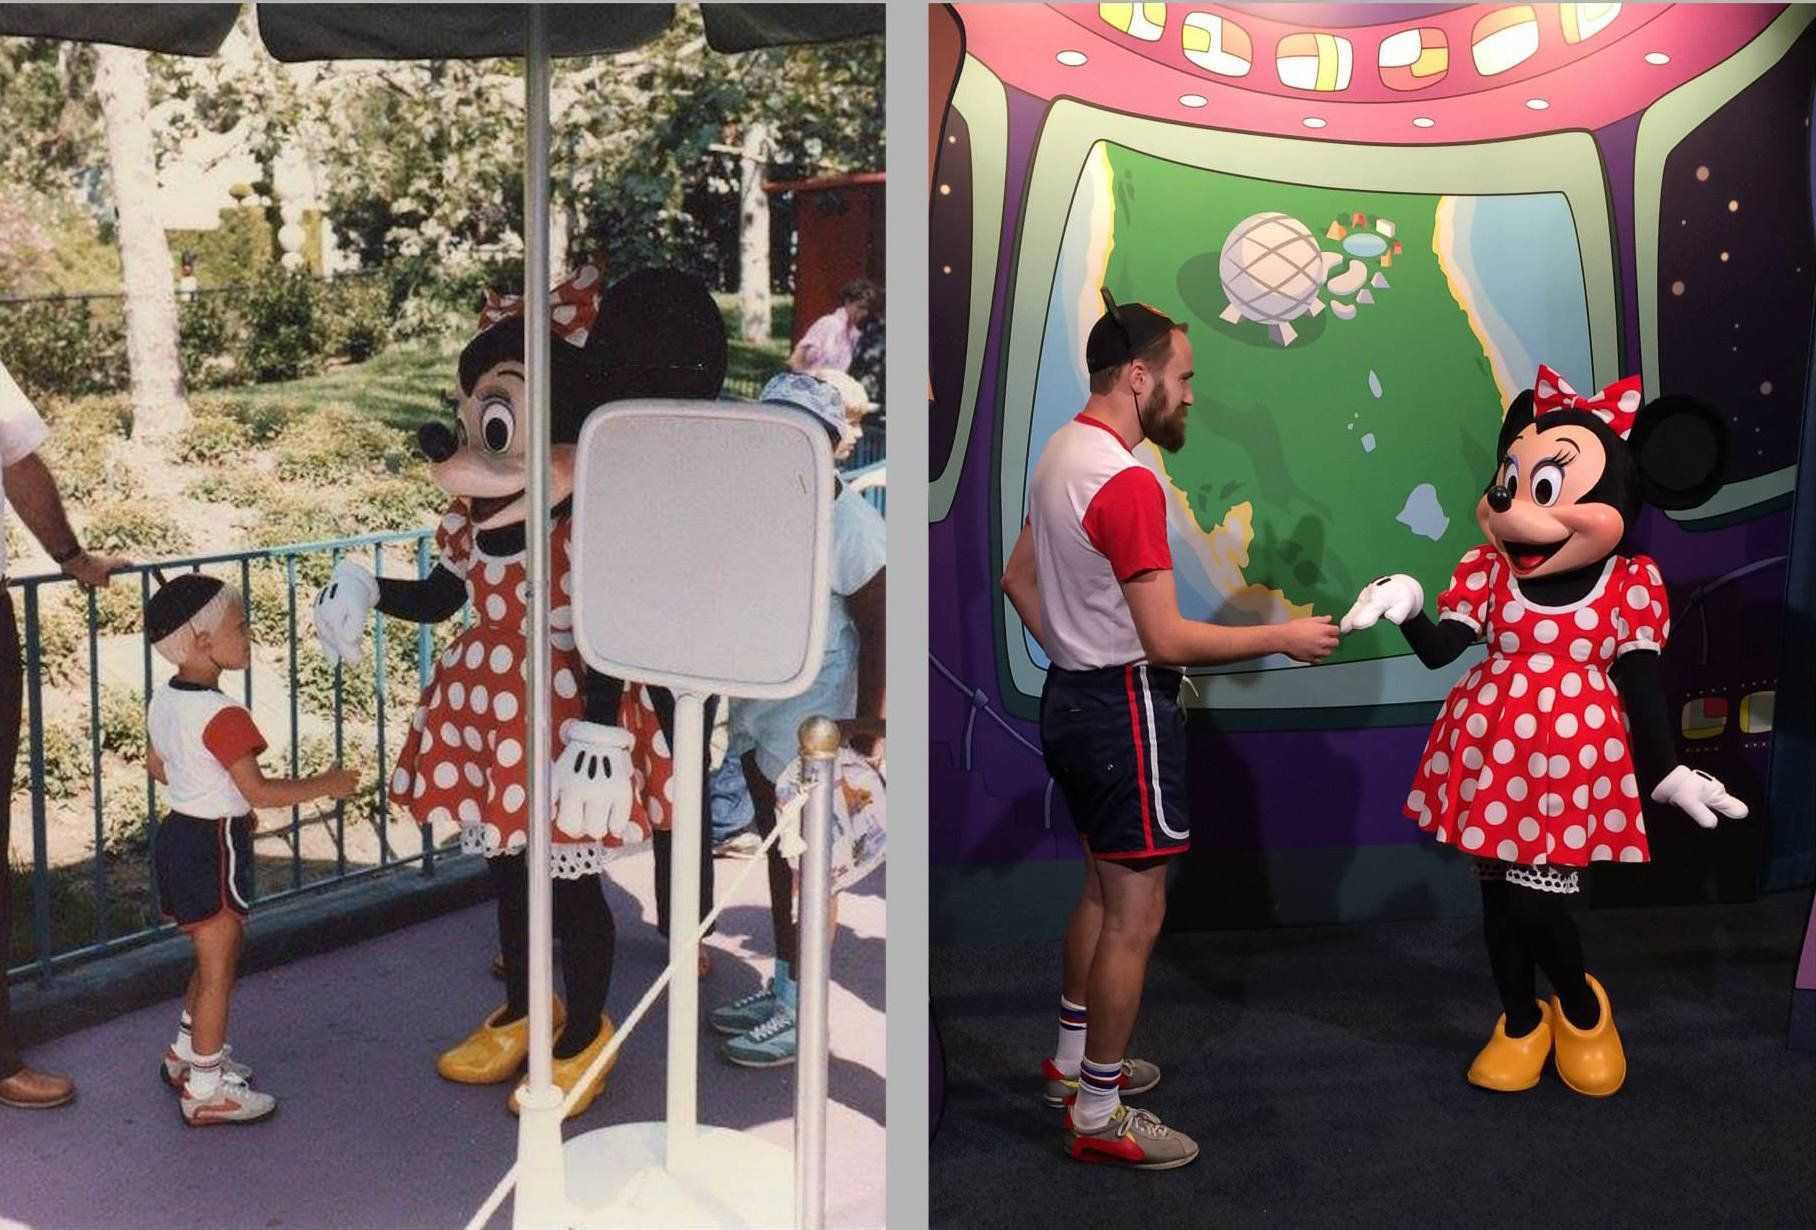 With help from his family, Brian Rush recreated a photo he took with Minnie Mouse as a kid.